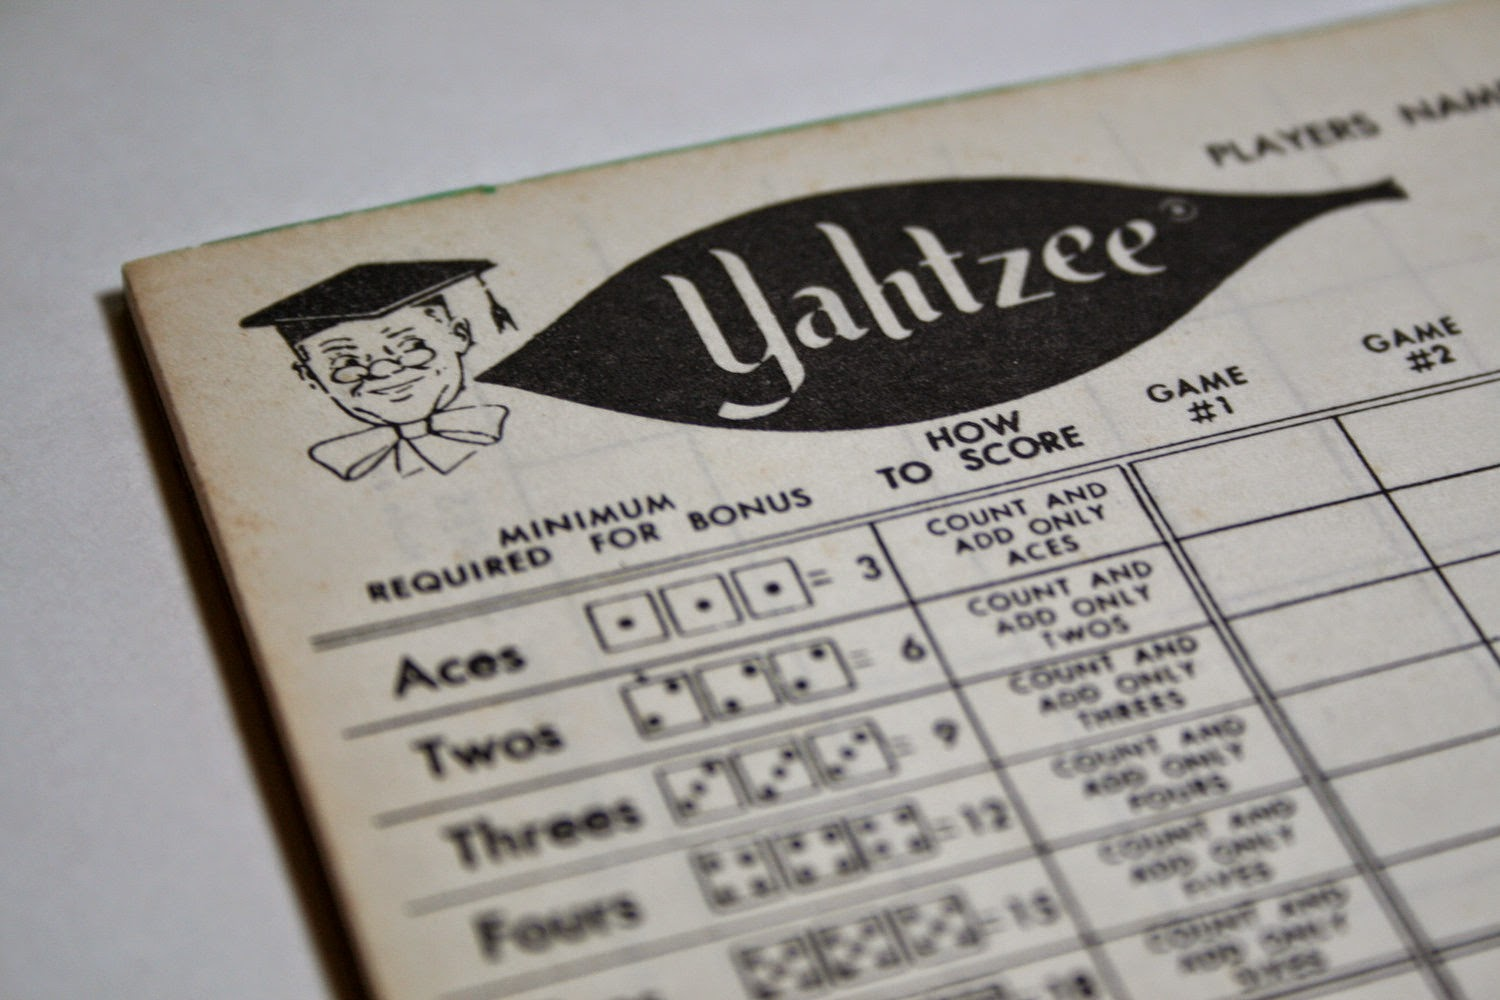 graphic relating to Printable Yahtzee Score Sheets 2 Per Page identified as Yahtzee On the net: Printable Yahtzee Ranking Sheet